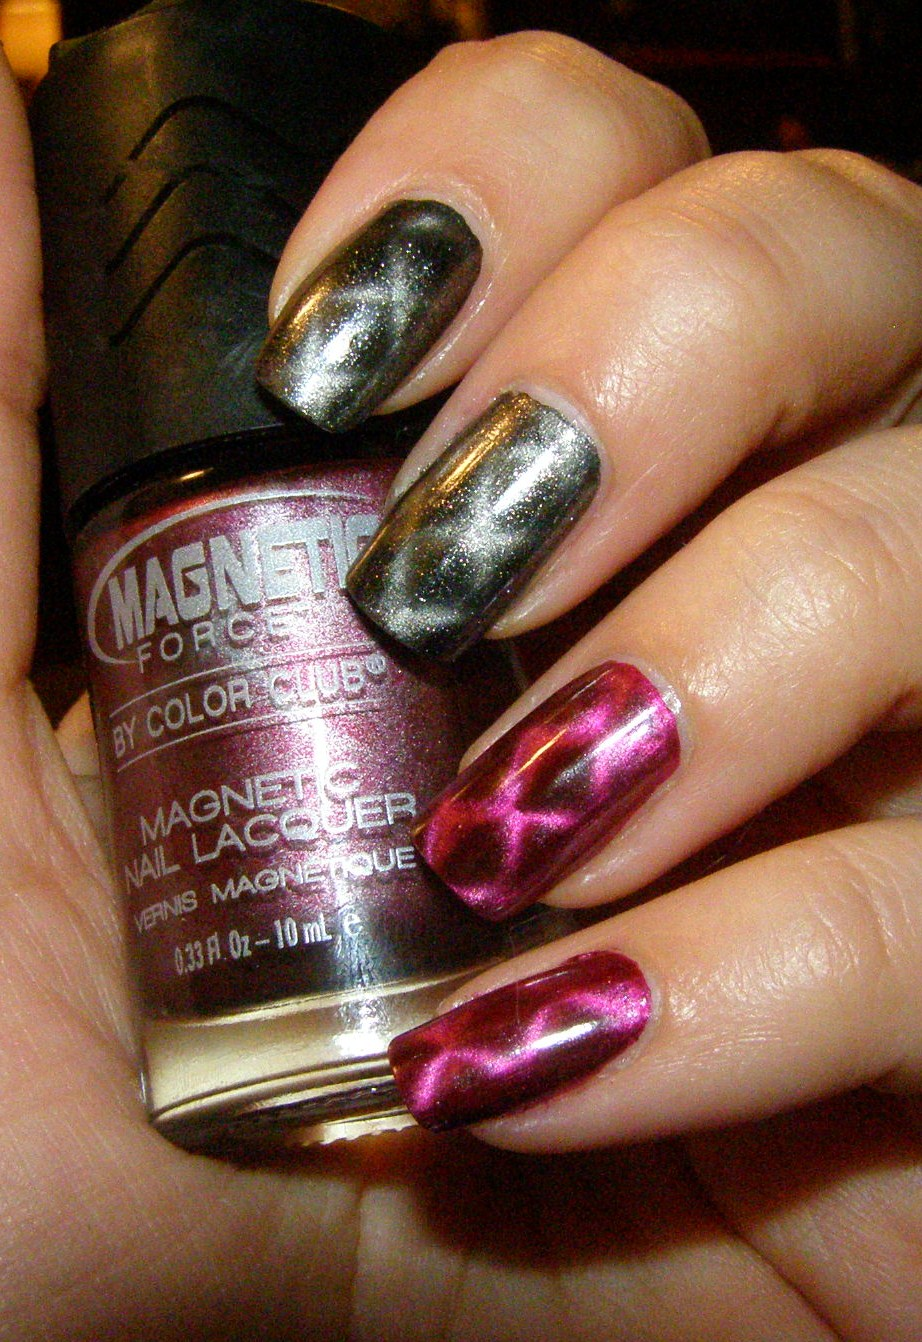 Craftynail: Sinfully Magnetic